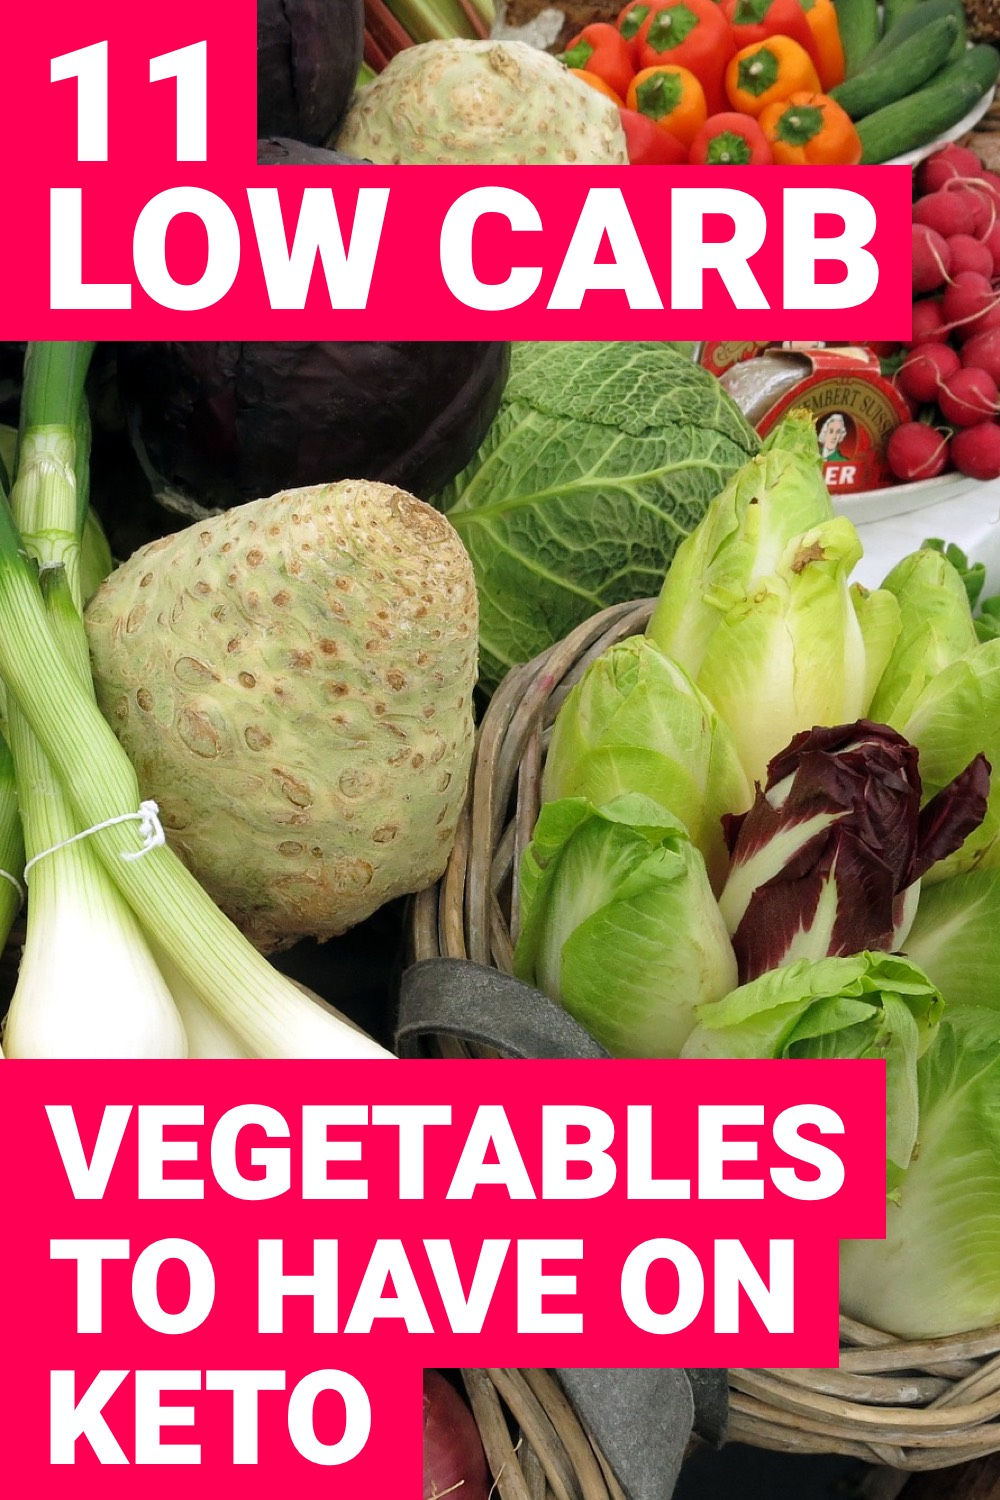 All vegetables have some amount of carbs but that doesn't mean you avoid them when doing keto. Here are the keto-safe vegetables you should include in your meals.